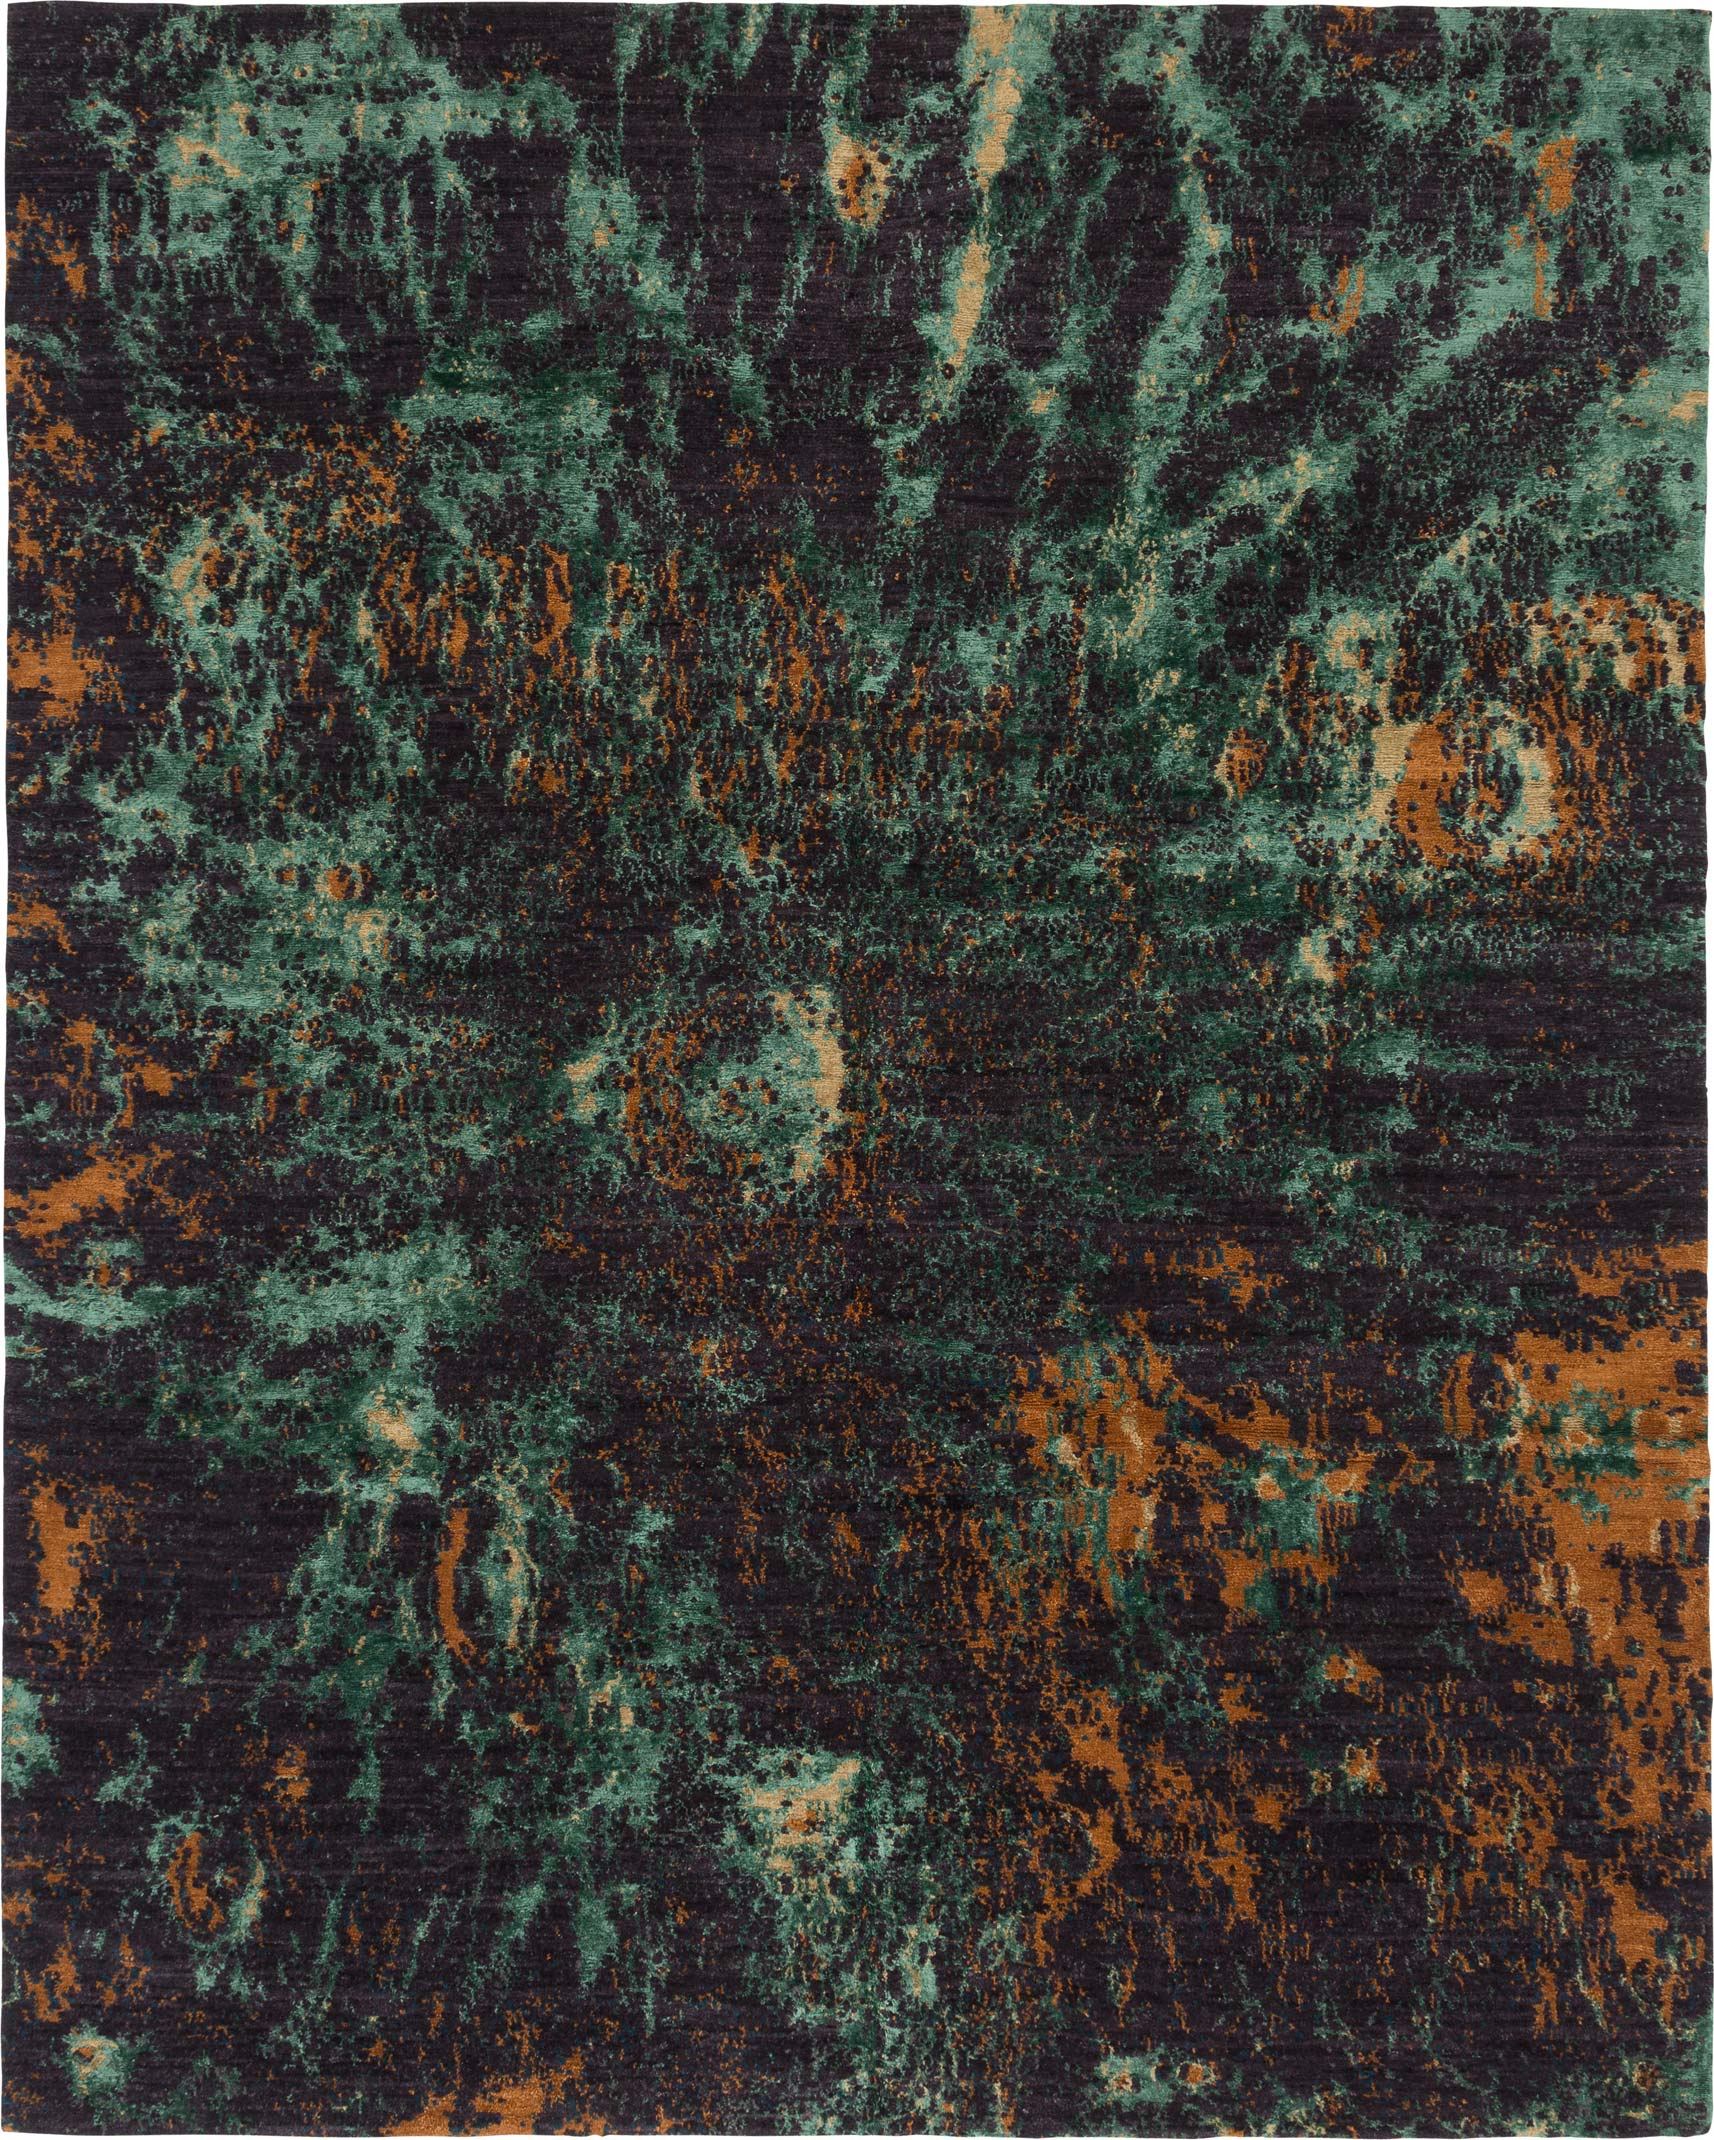 Moonscape shown in colour Malachite by Tufenkian   Image courtesy of Tufenkian